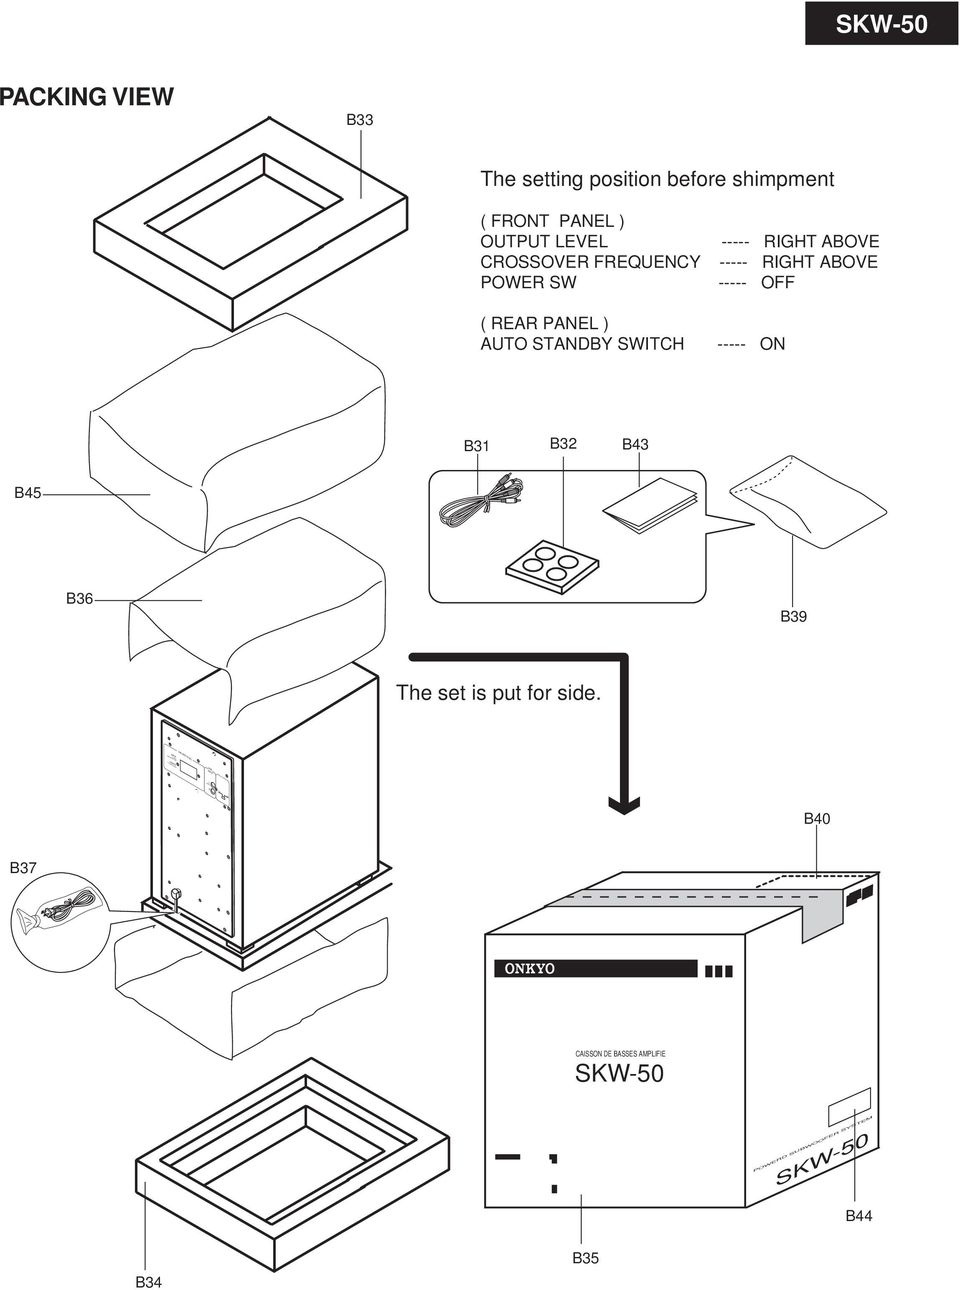 Service Manual Powered Subwoofer Pdf Addition Wiring Diagram On 8 Pin Crossover Standby Switch Right Above